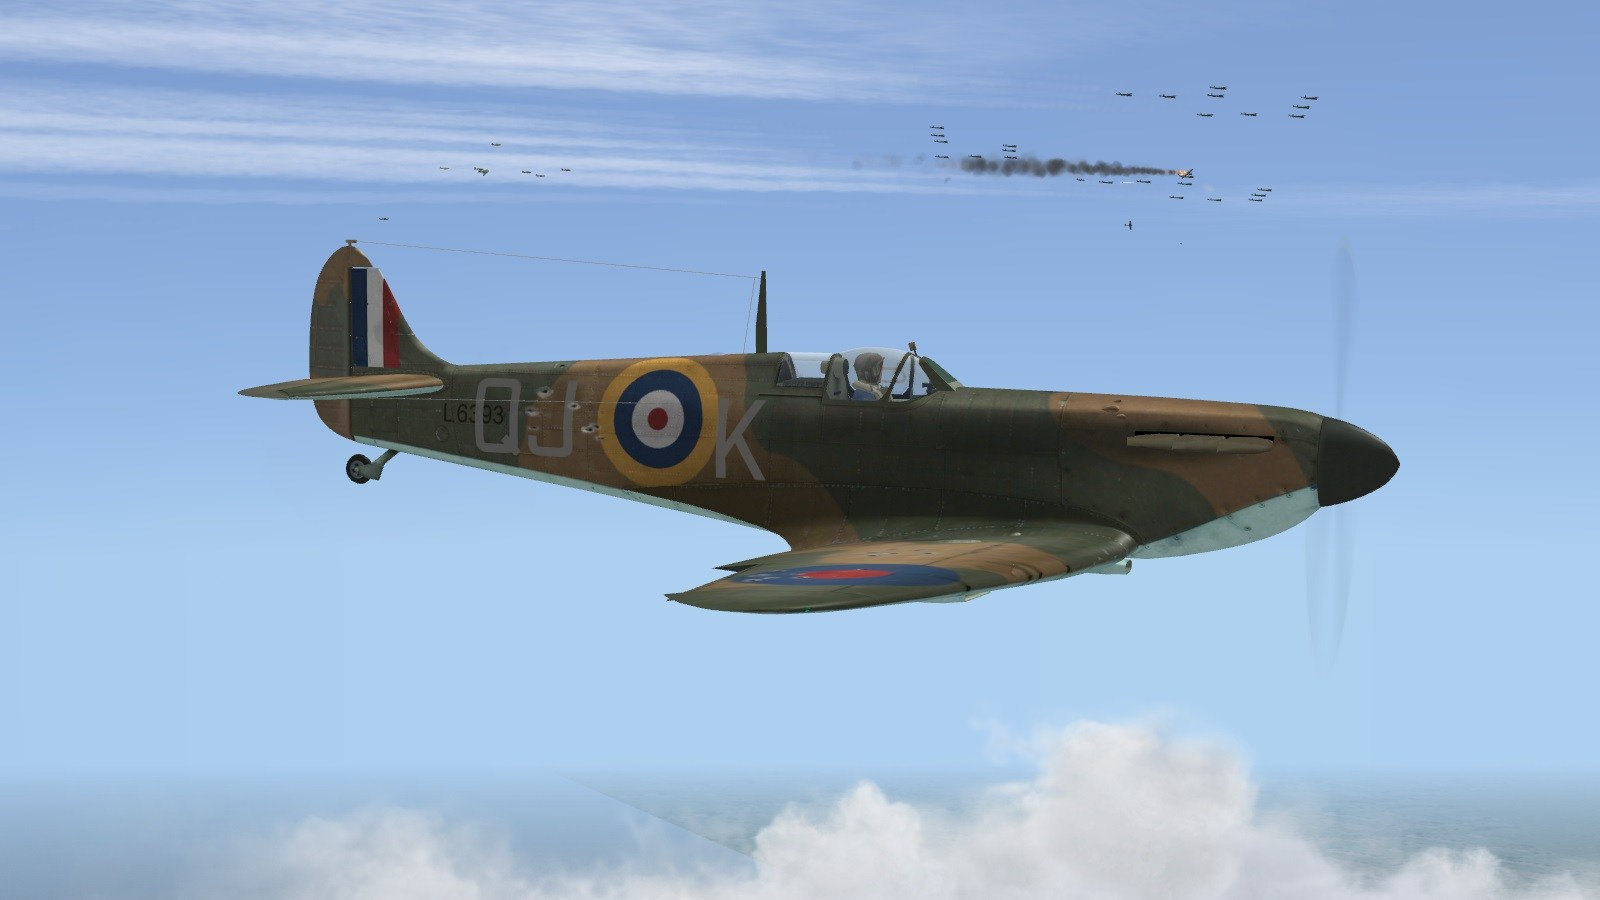 Battle of Britain II - 92 Squadron intercepts Hostile 202